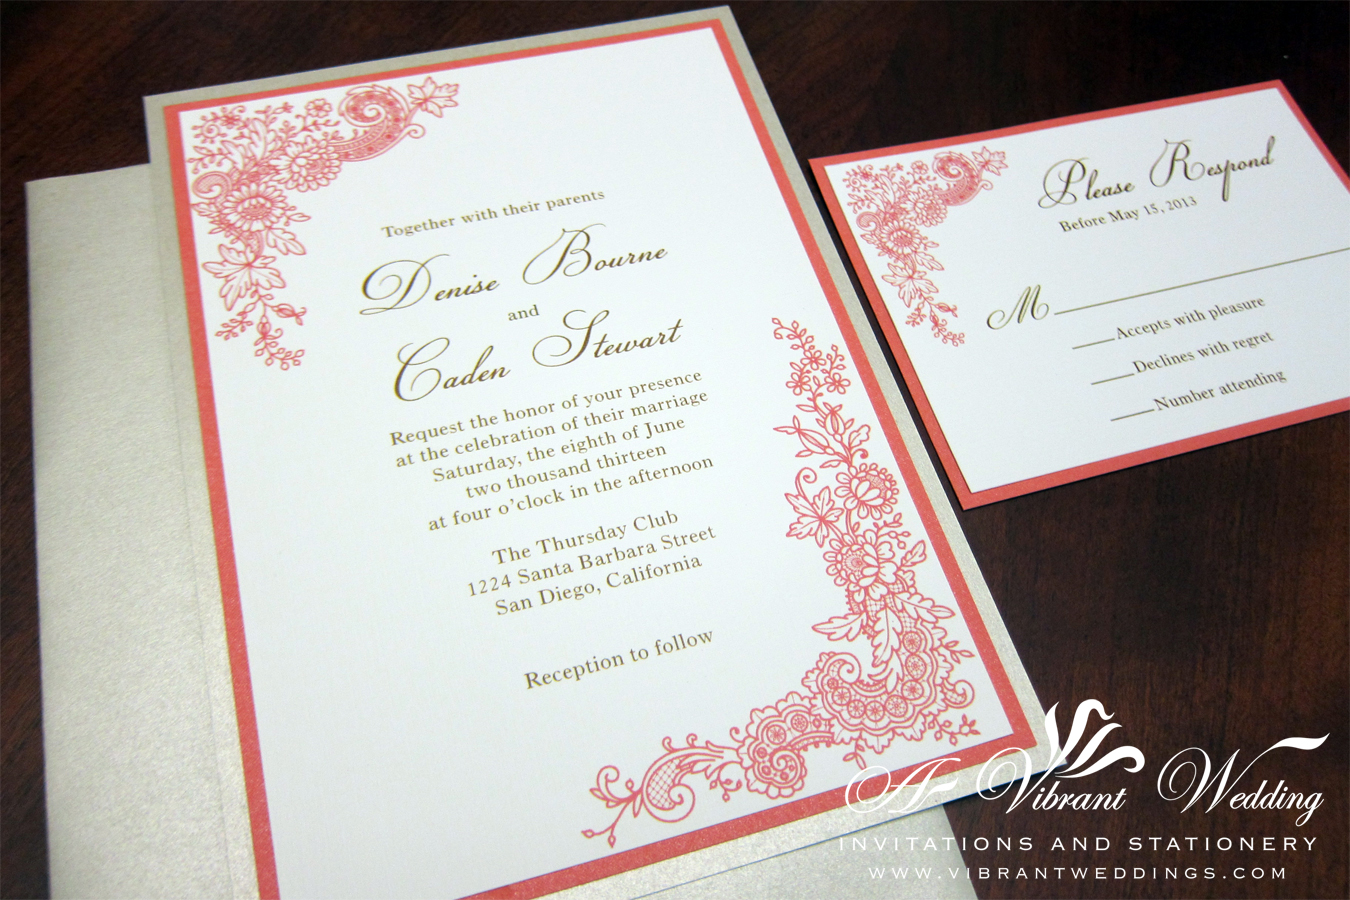 Wedding Invitation Picture: Victorian Wedding Invitation